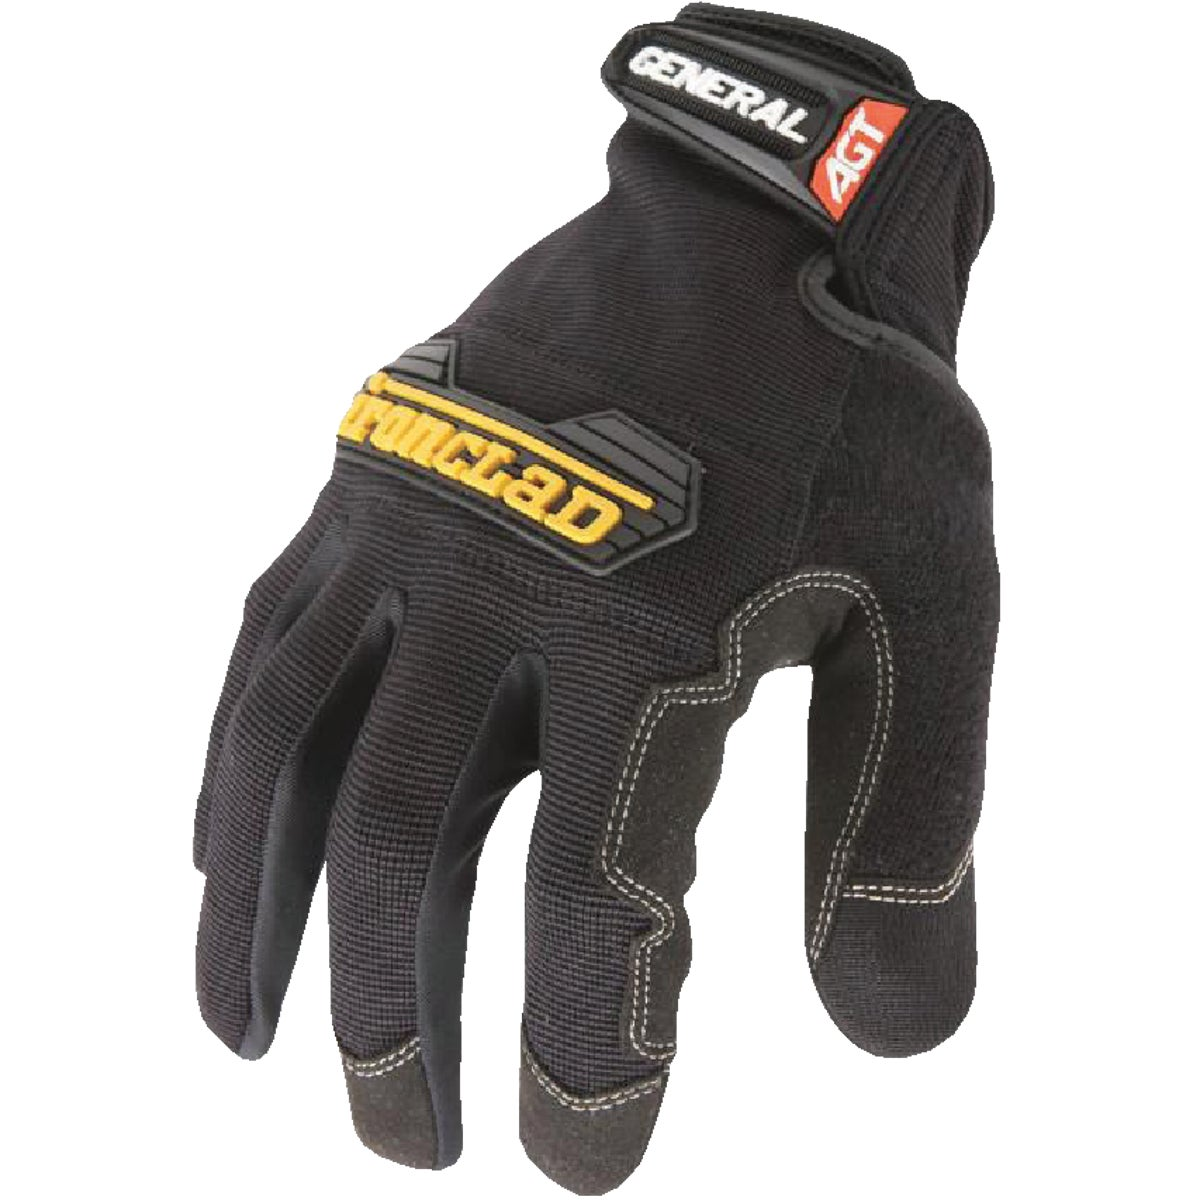 XL GEN UTILITY GLOVE - GUG2-05-XL by Ironclad Performance